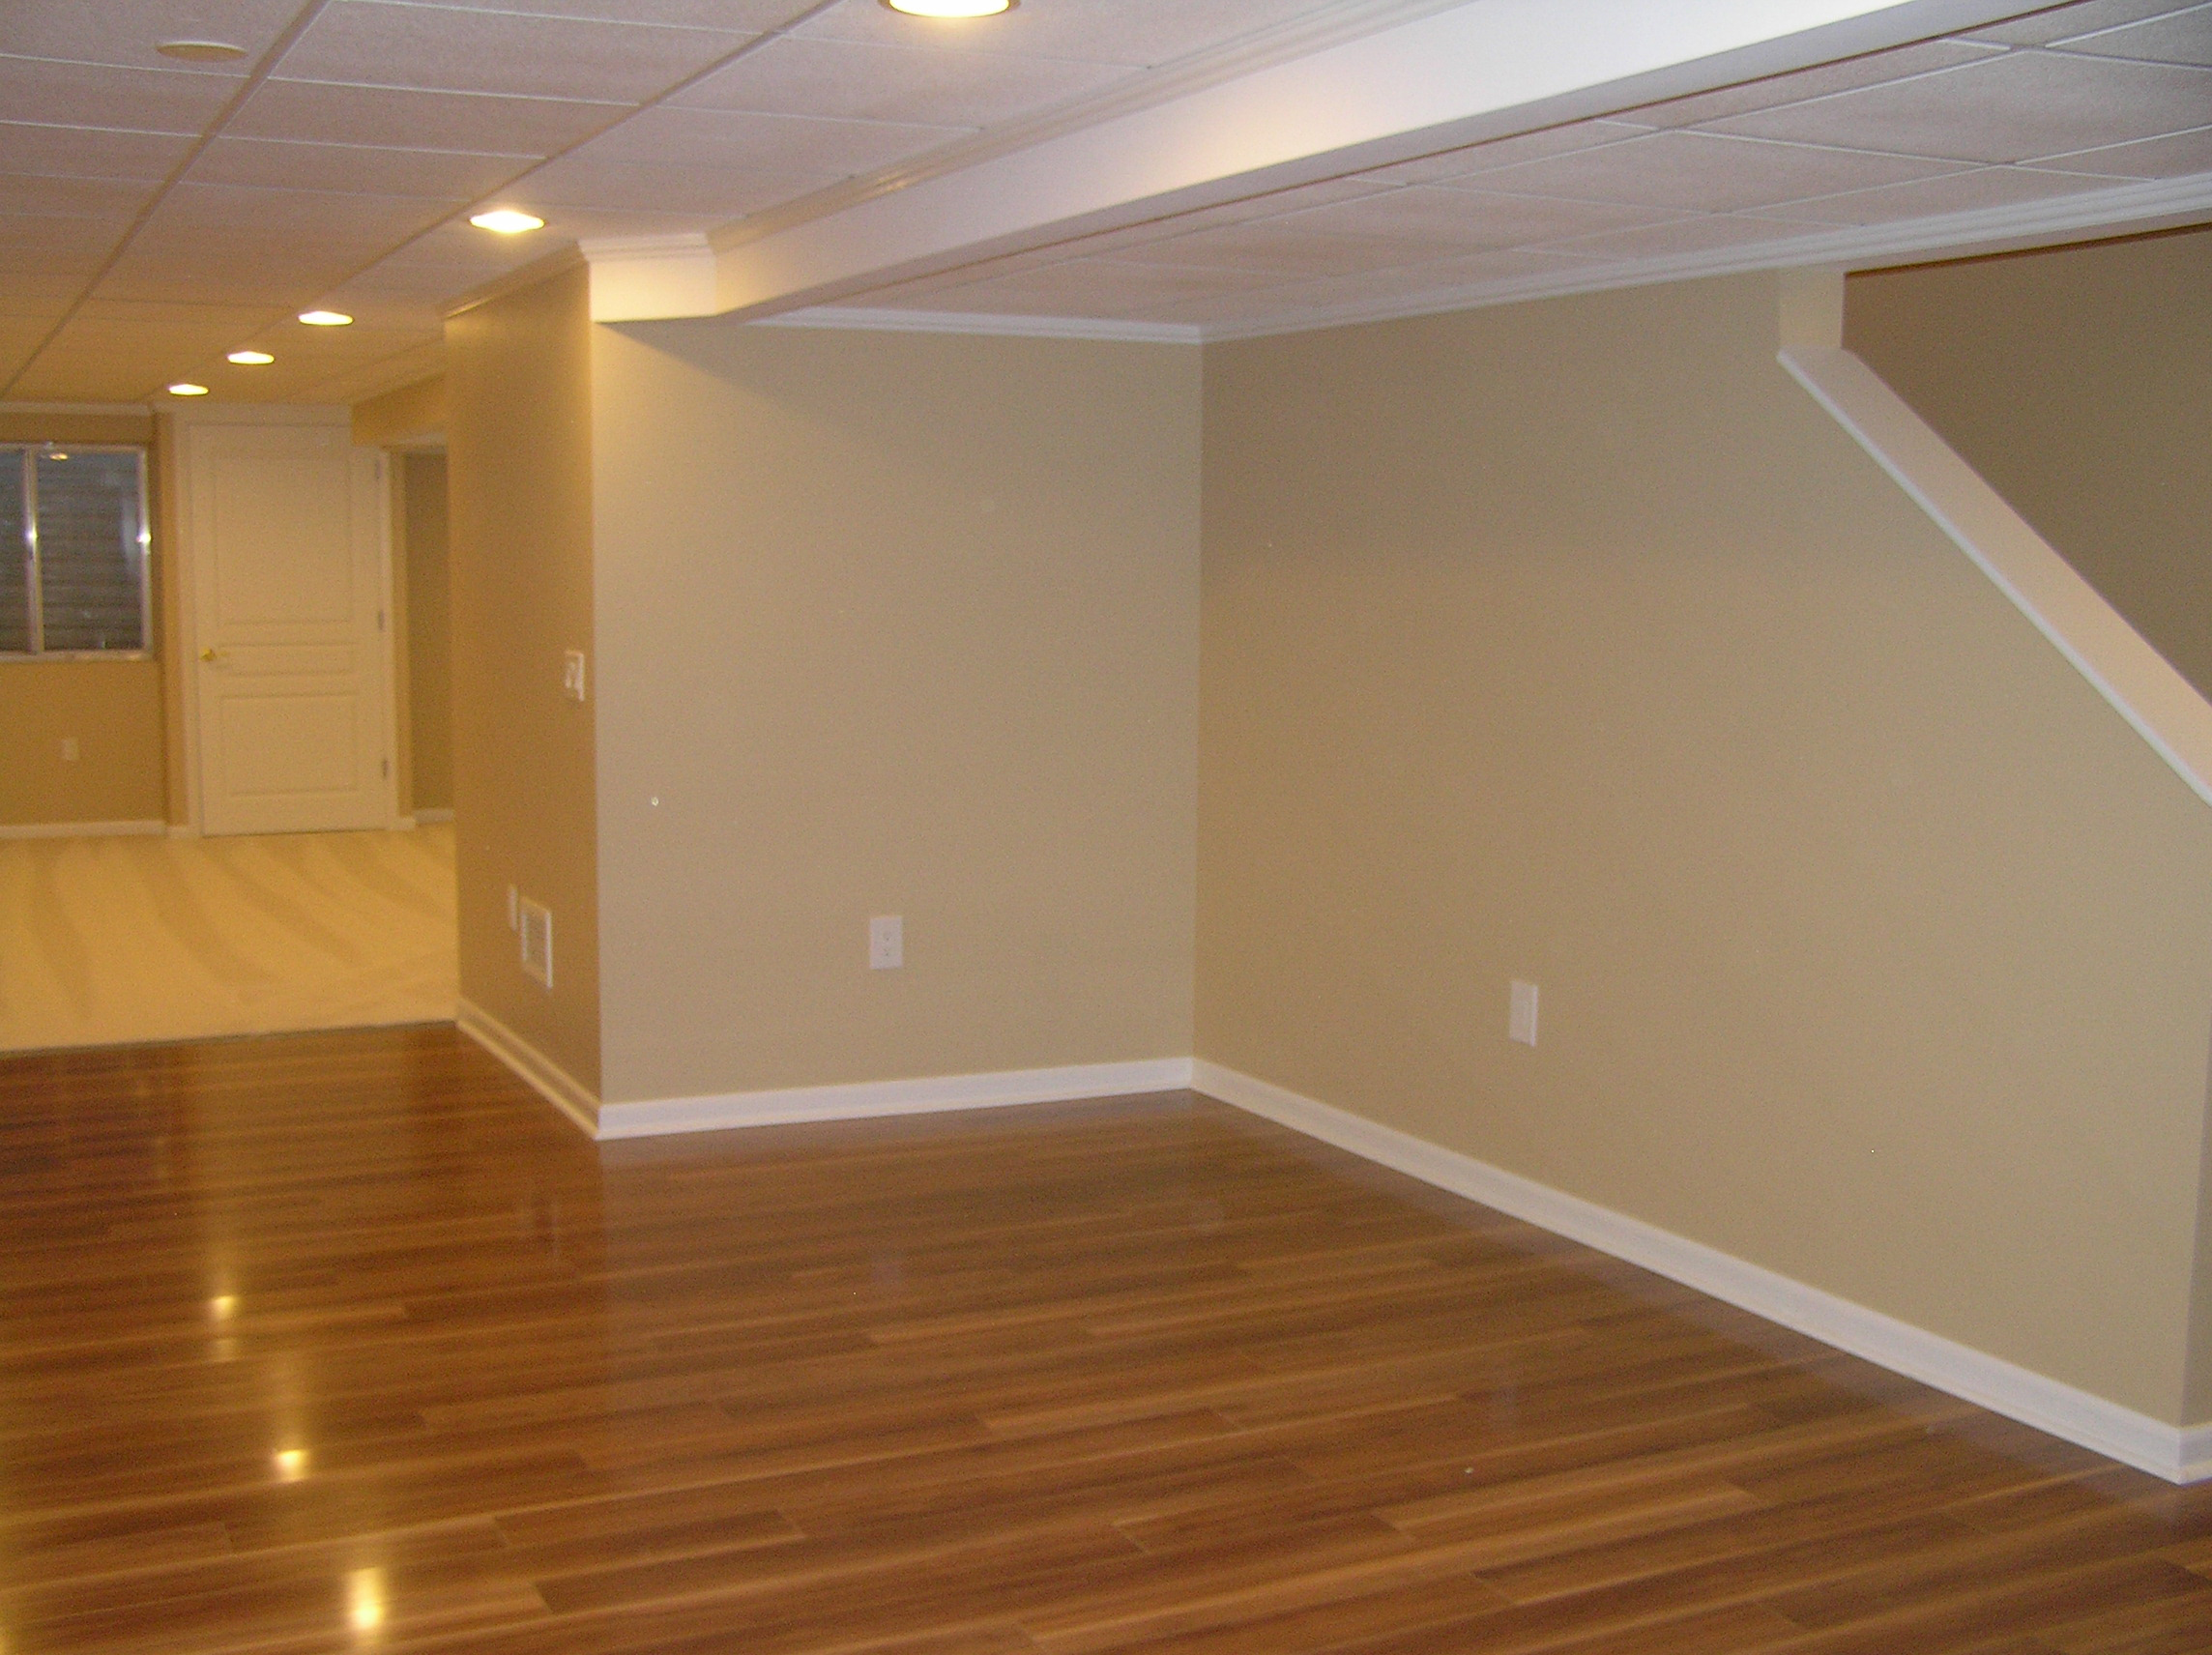 Basement Finishing in Naperville, Aurora, Joliet, Illinois : Basement Finishing Company IL ...